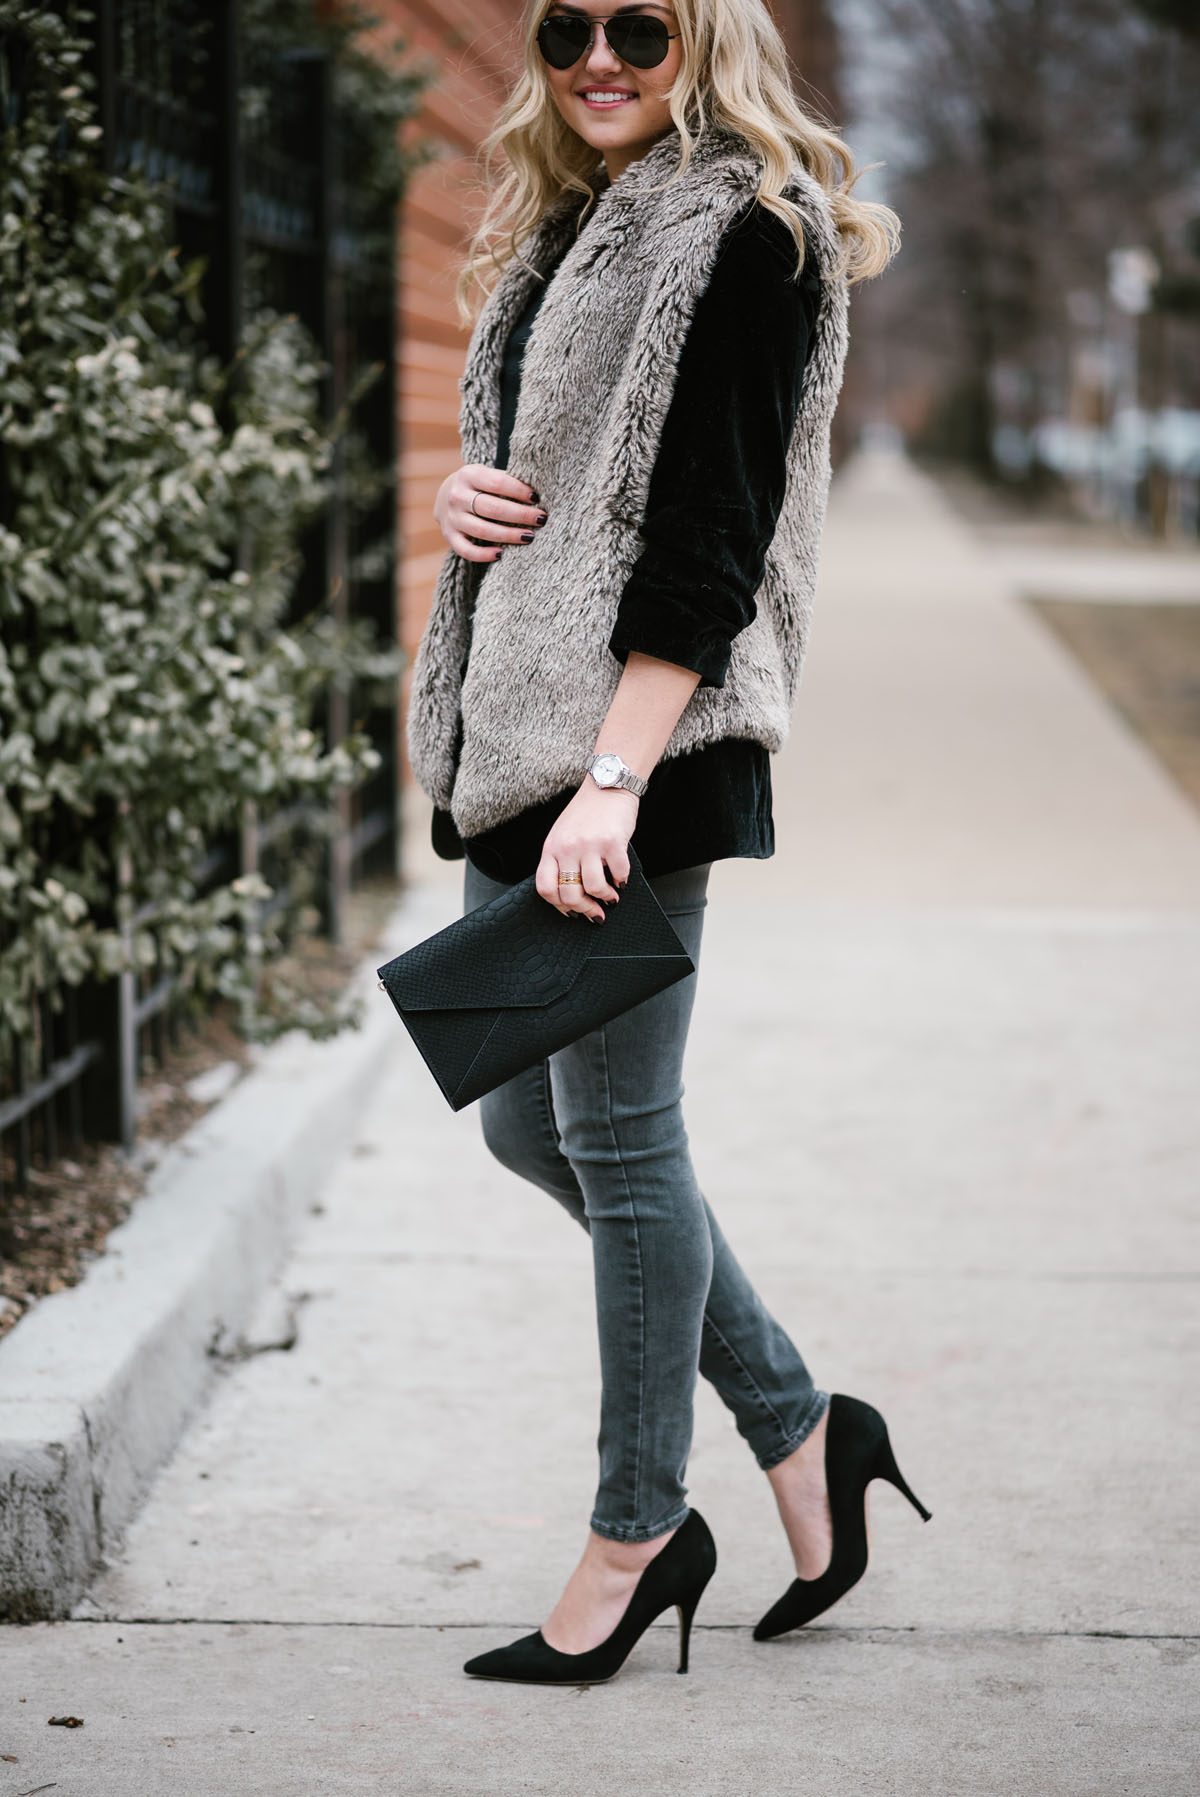 How to black wear faux fur vest recommendations to wear for autumn in 2019